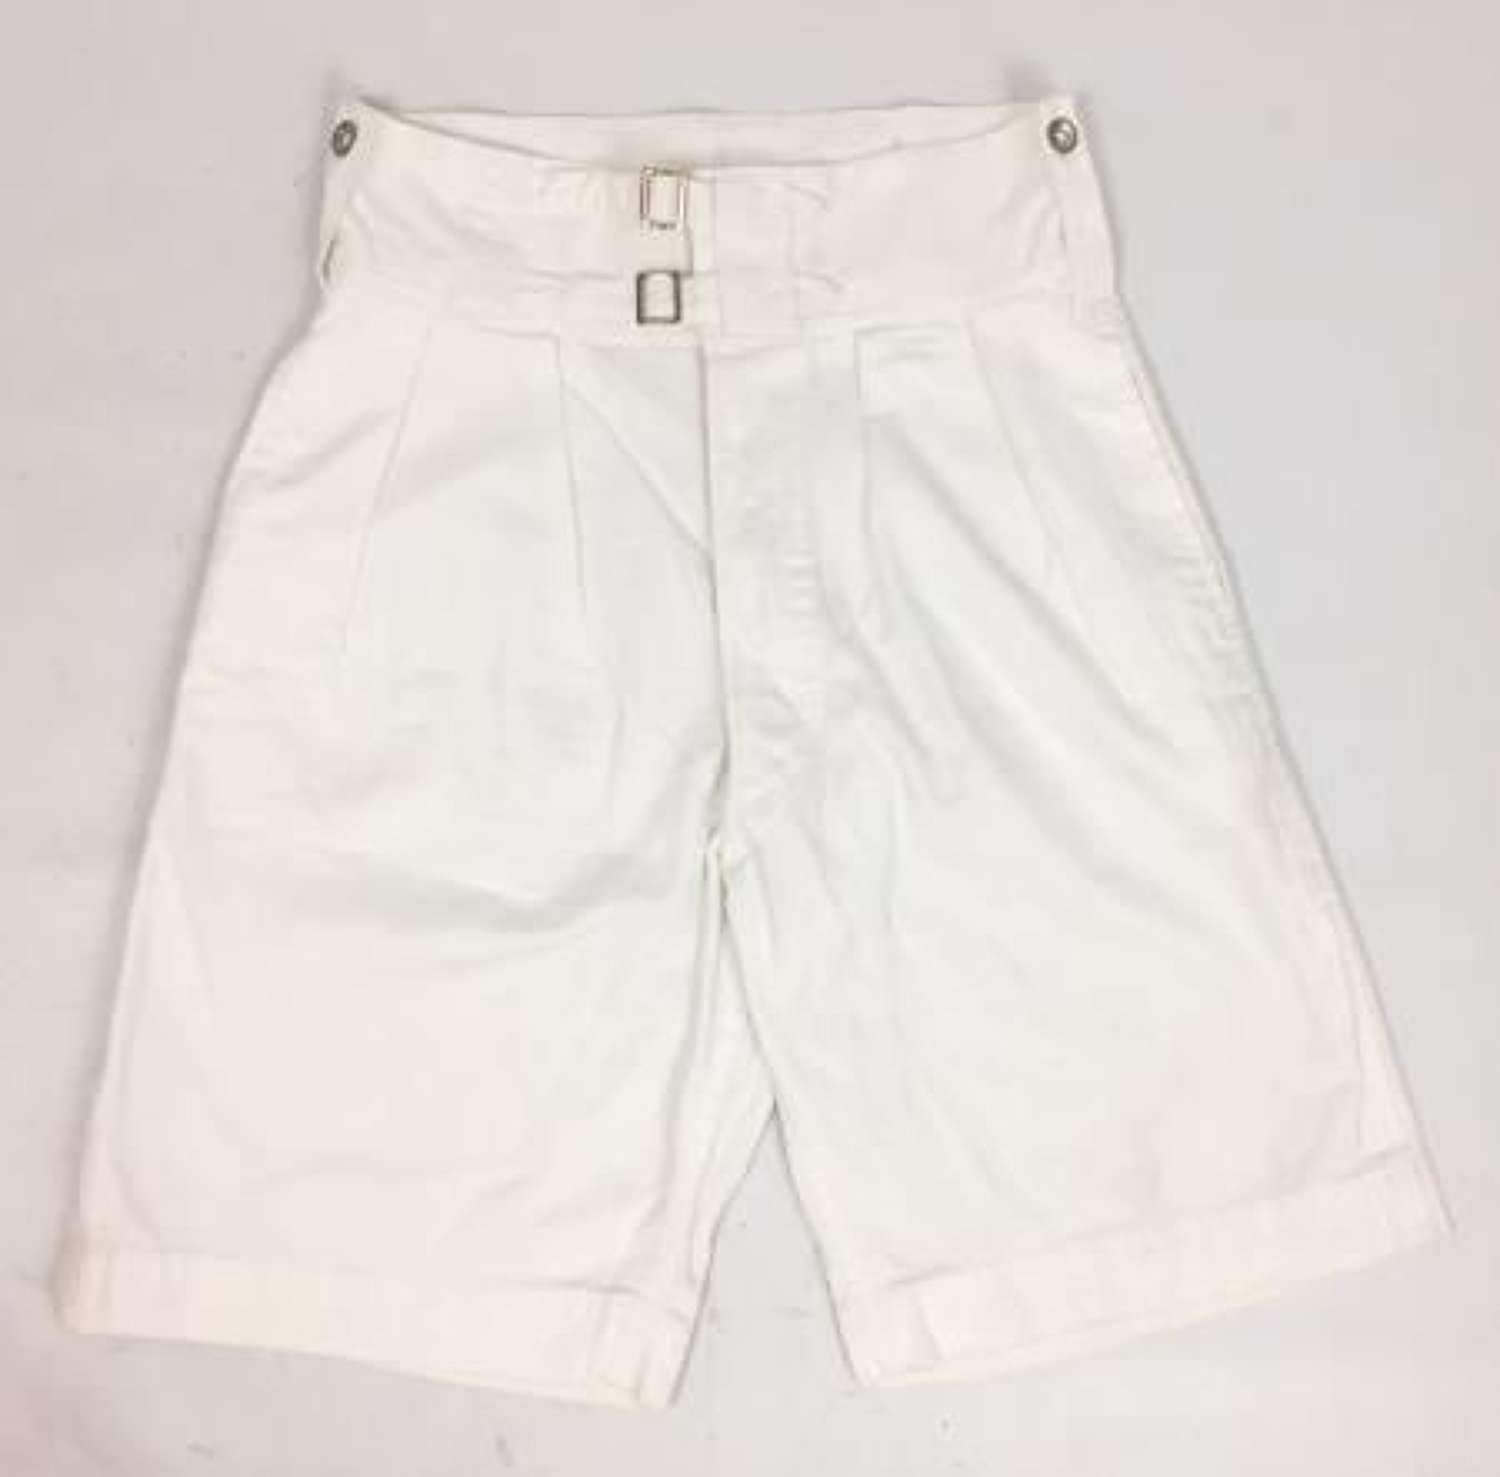 1943 Dated Royal Navy White Shorts by 'Harrods'